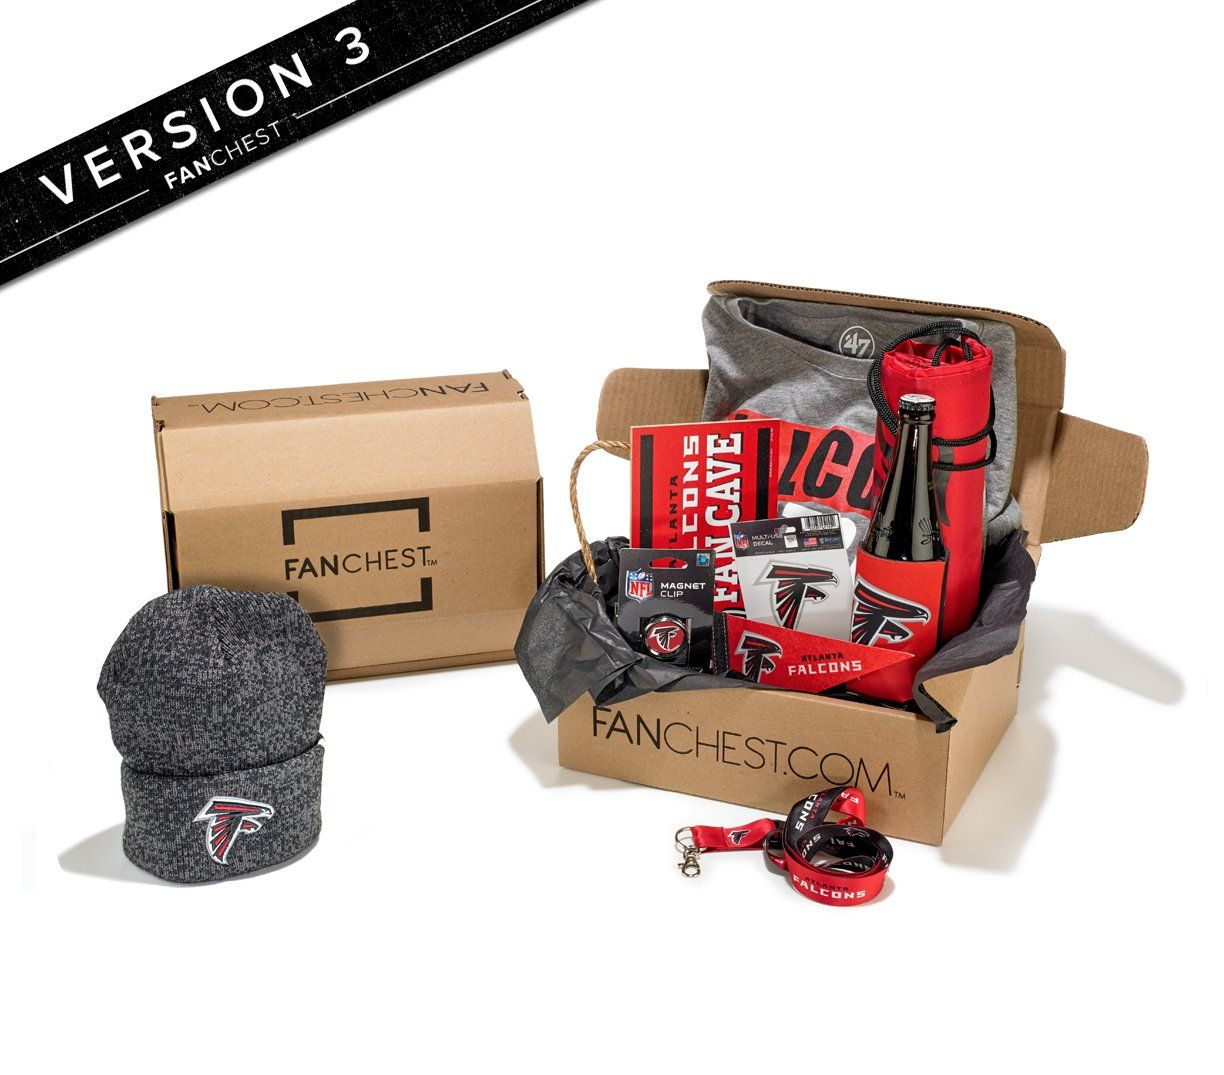 Falcons Gifts Gifts For Falcons Fans Fanchest Atlanta Falcons Gifts Fanchest Atlanta Falcons